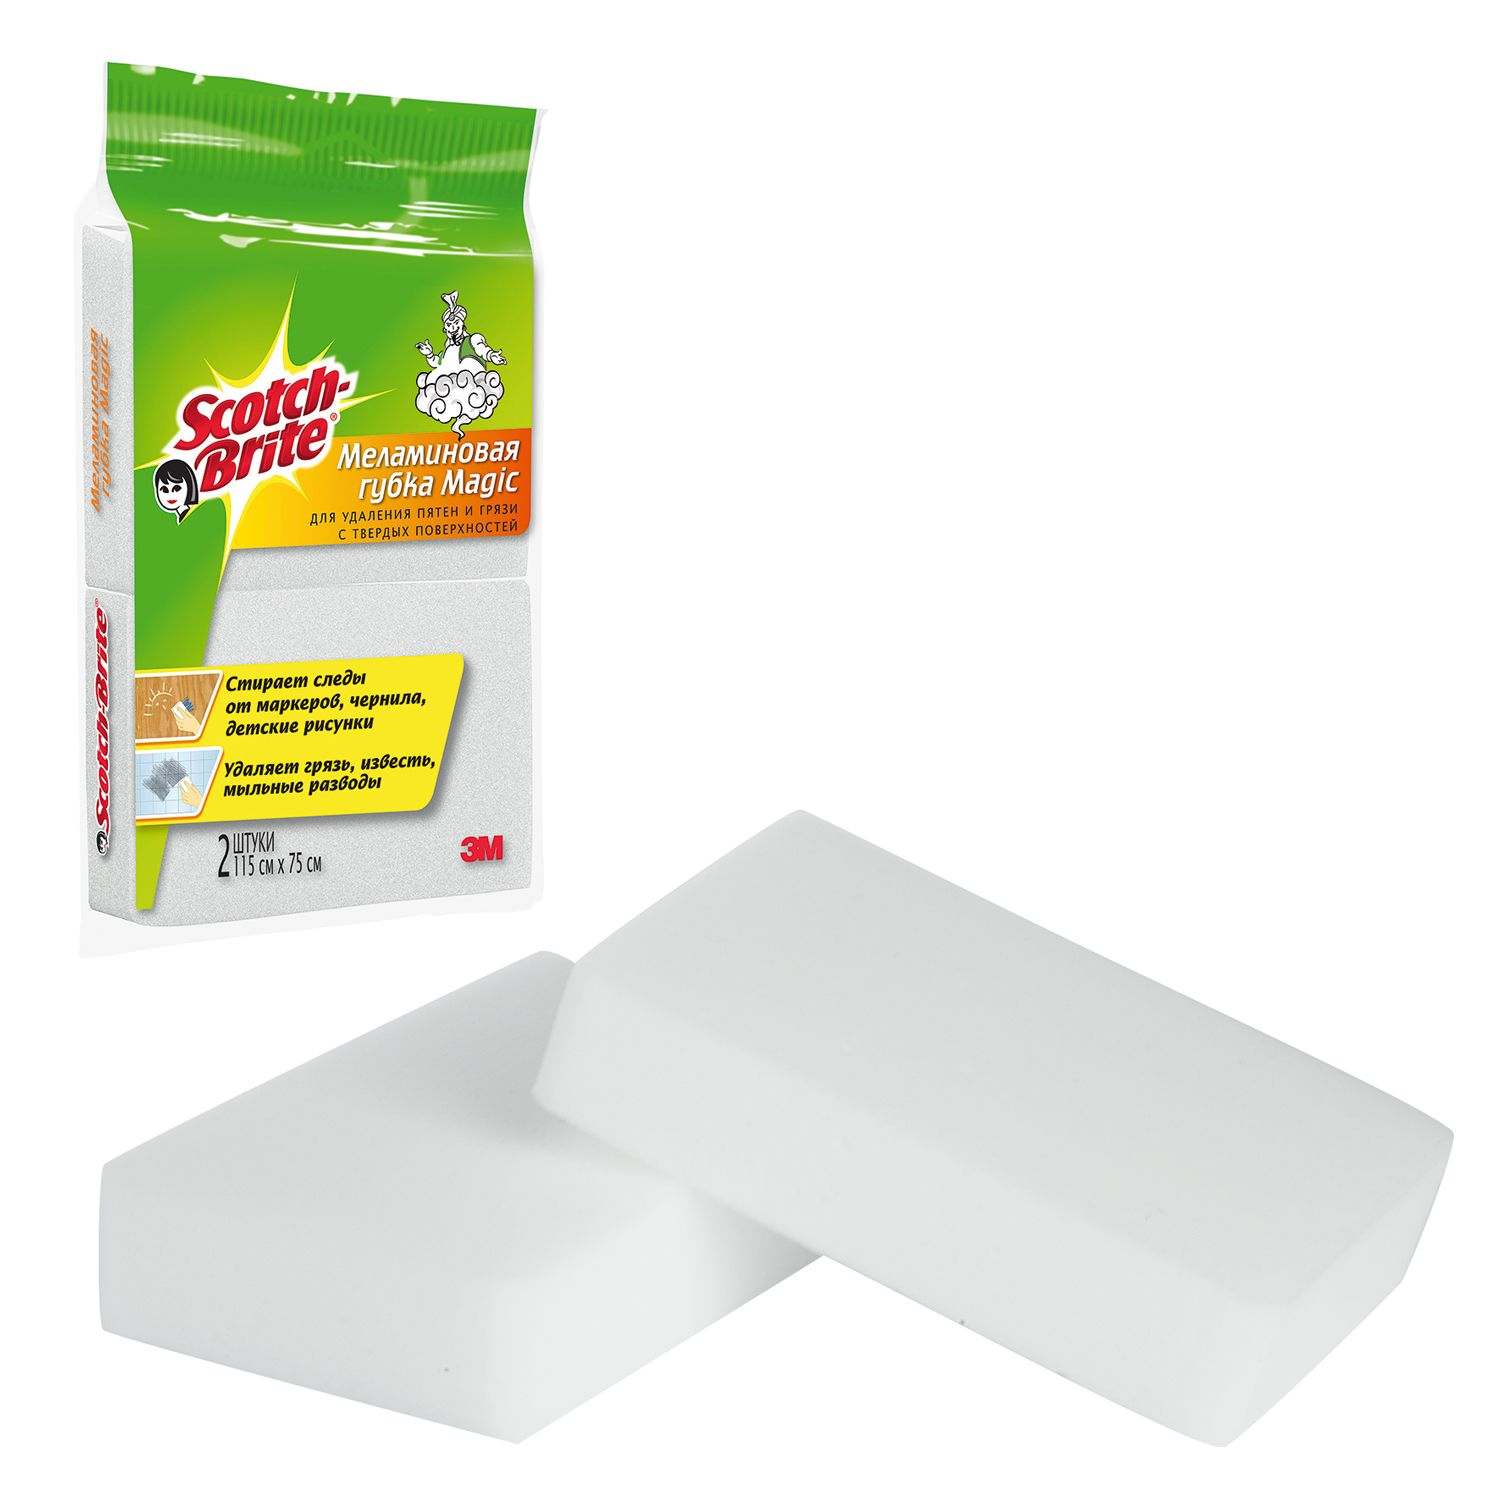 "SCOTCH-BRITE / Household sponges ""Magic"" for removing stains, melamine, 25х113х73 mm, set of 2 pcs."